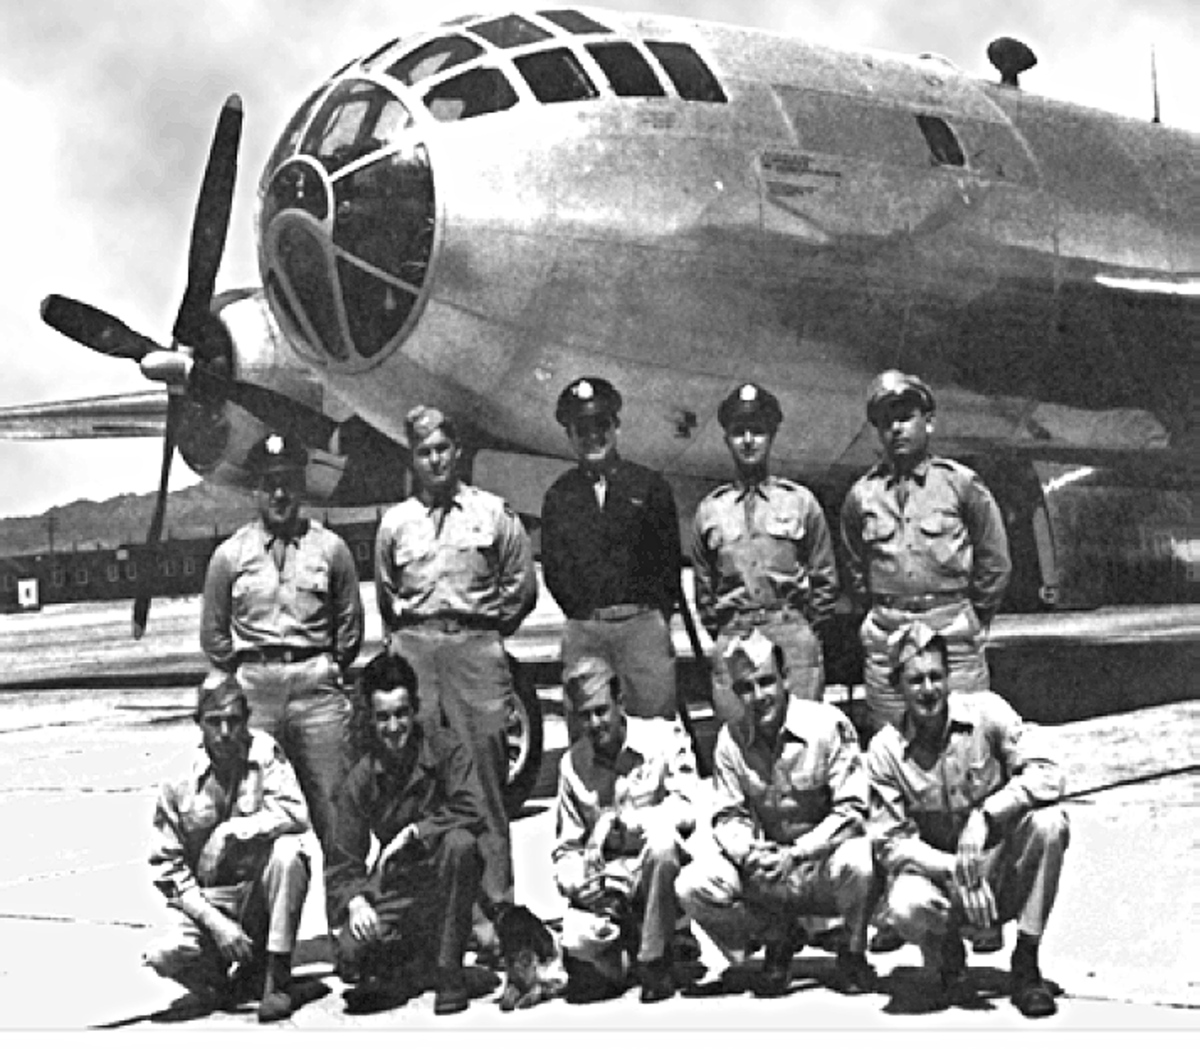 The crew of Bockscar the B-29 that dropped the Atomic Bomb on Nagasaki, August the 9th 1945.